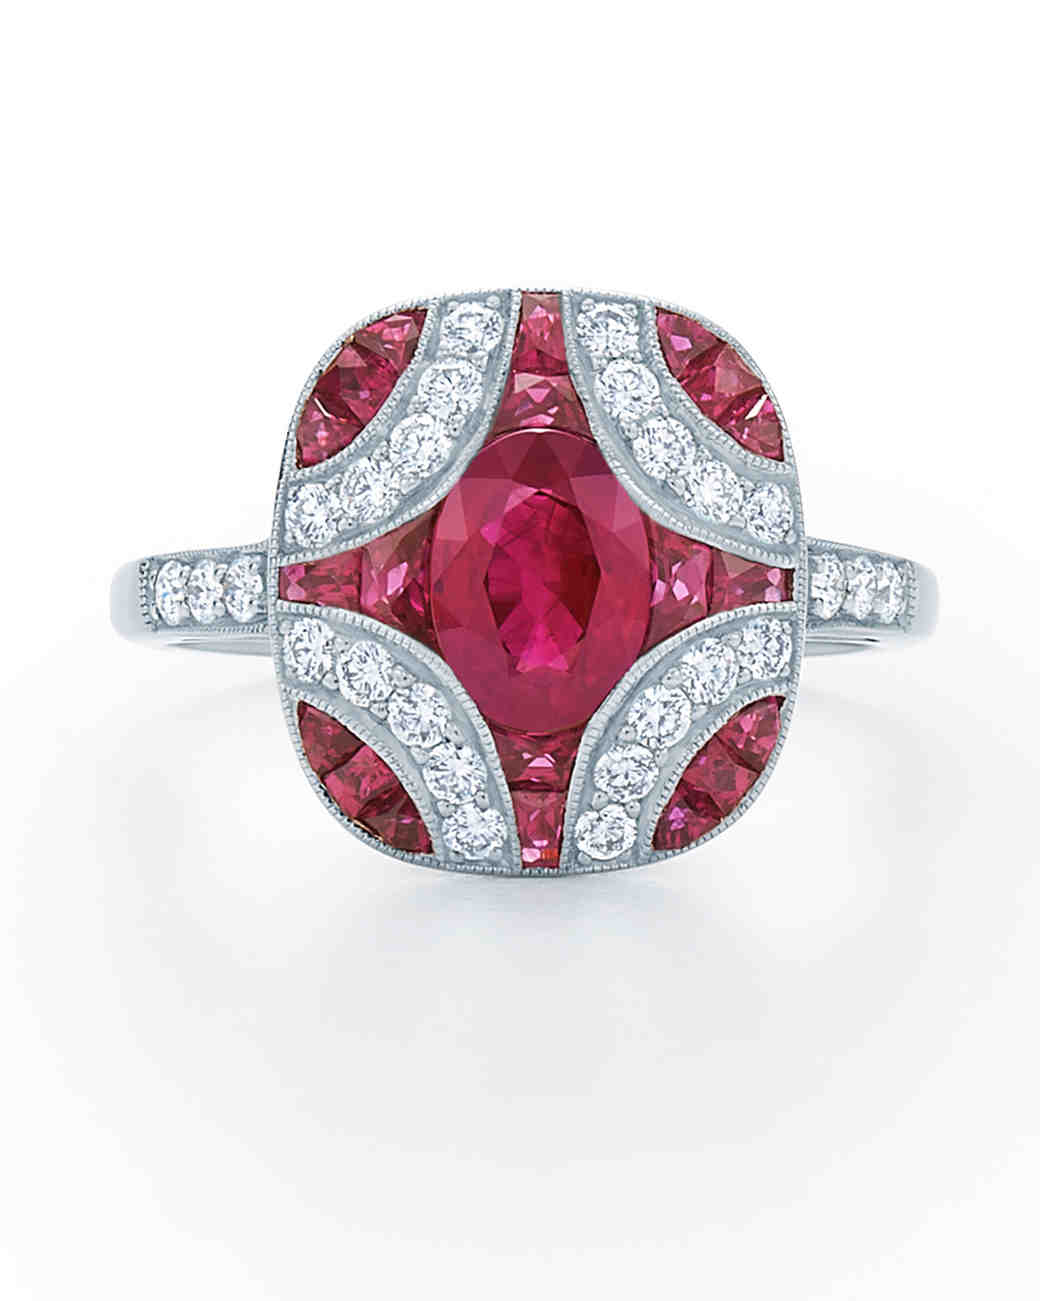 ruby engagement rings ruby wedding rings Kwiat Vintage Ruby Engagement Ring with Diamond Detailing